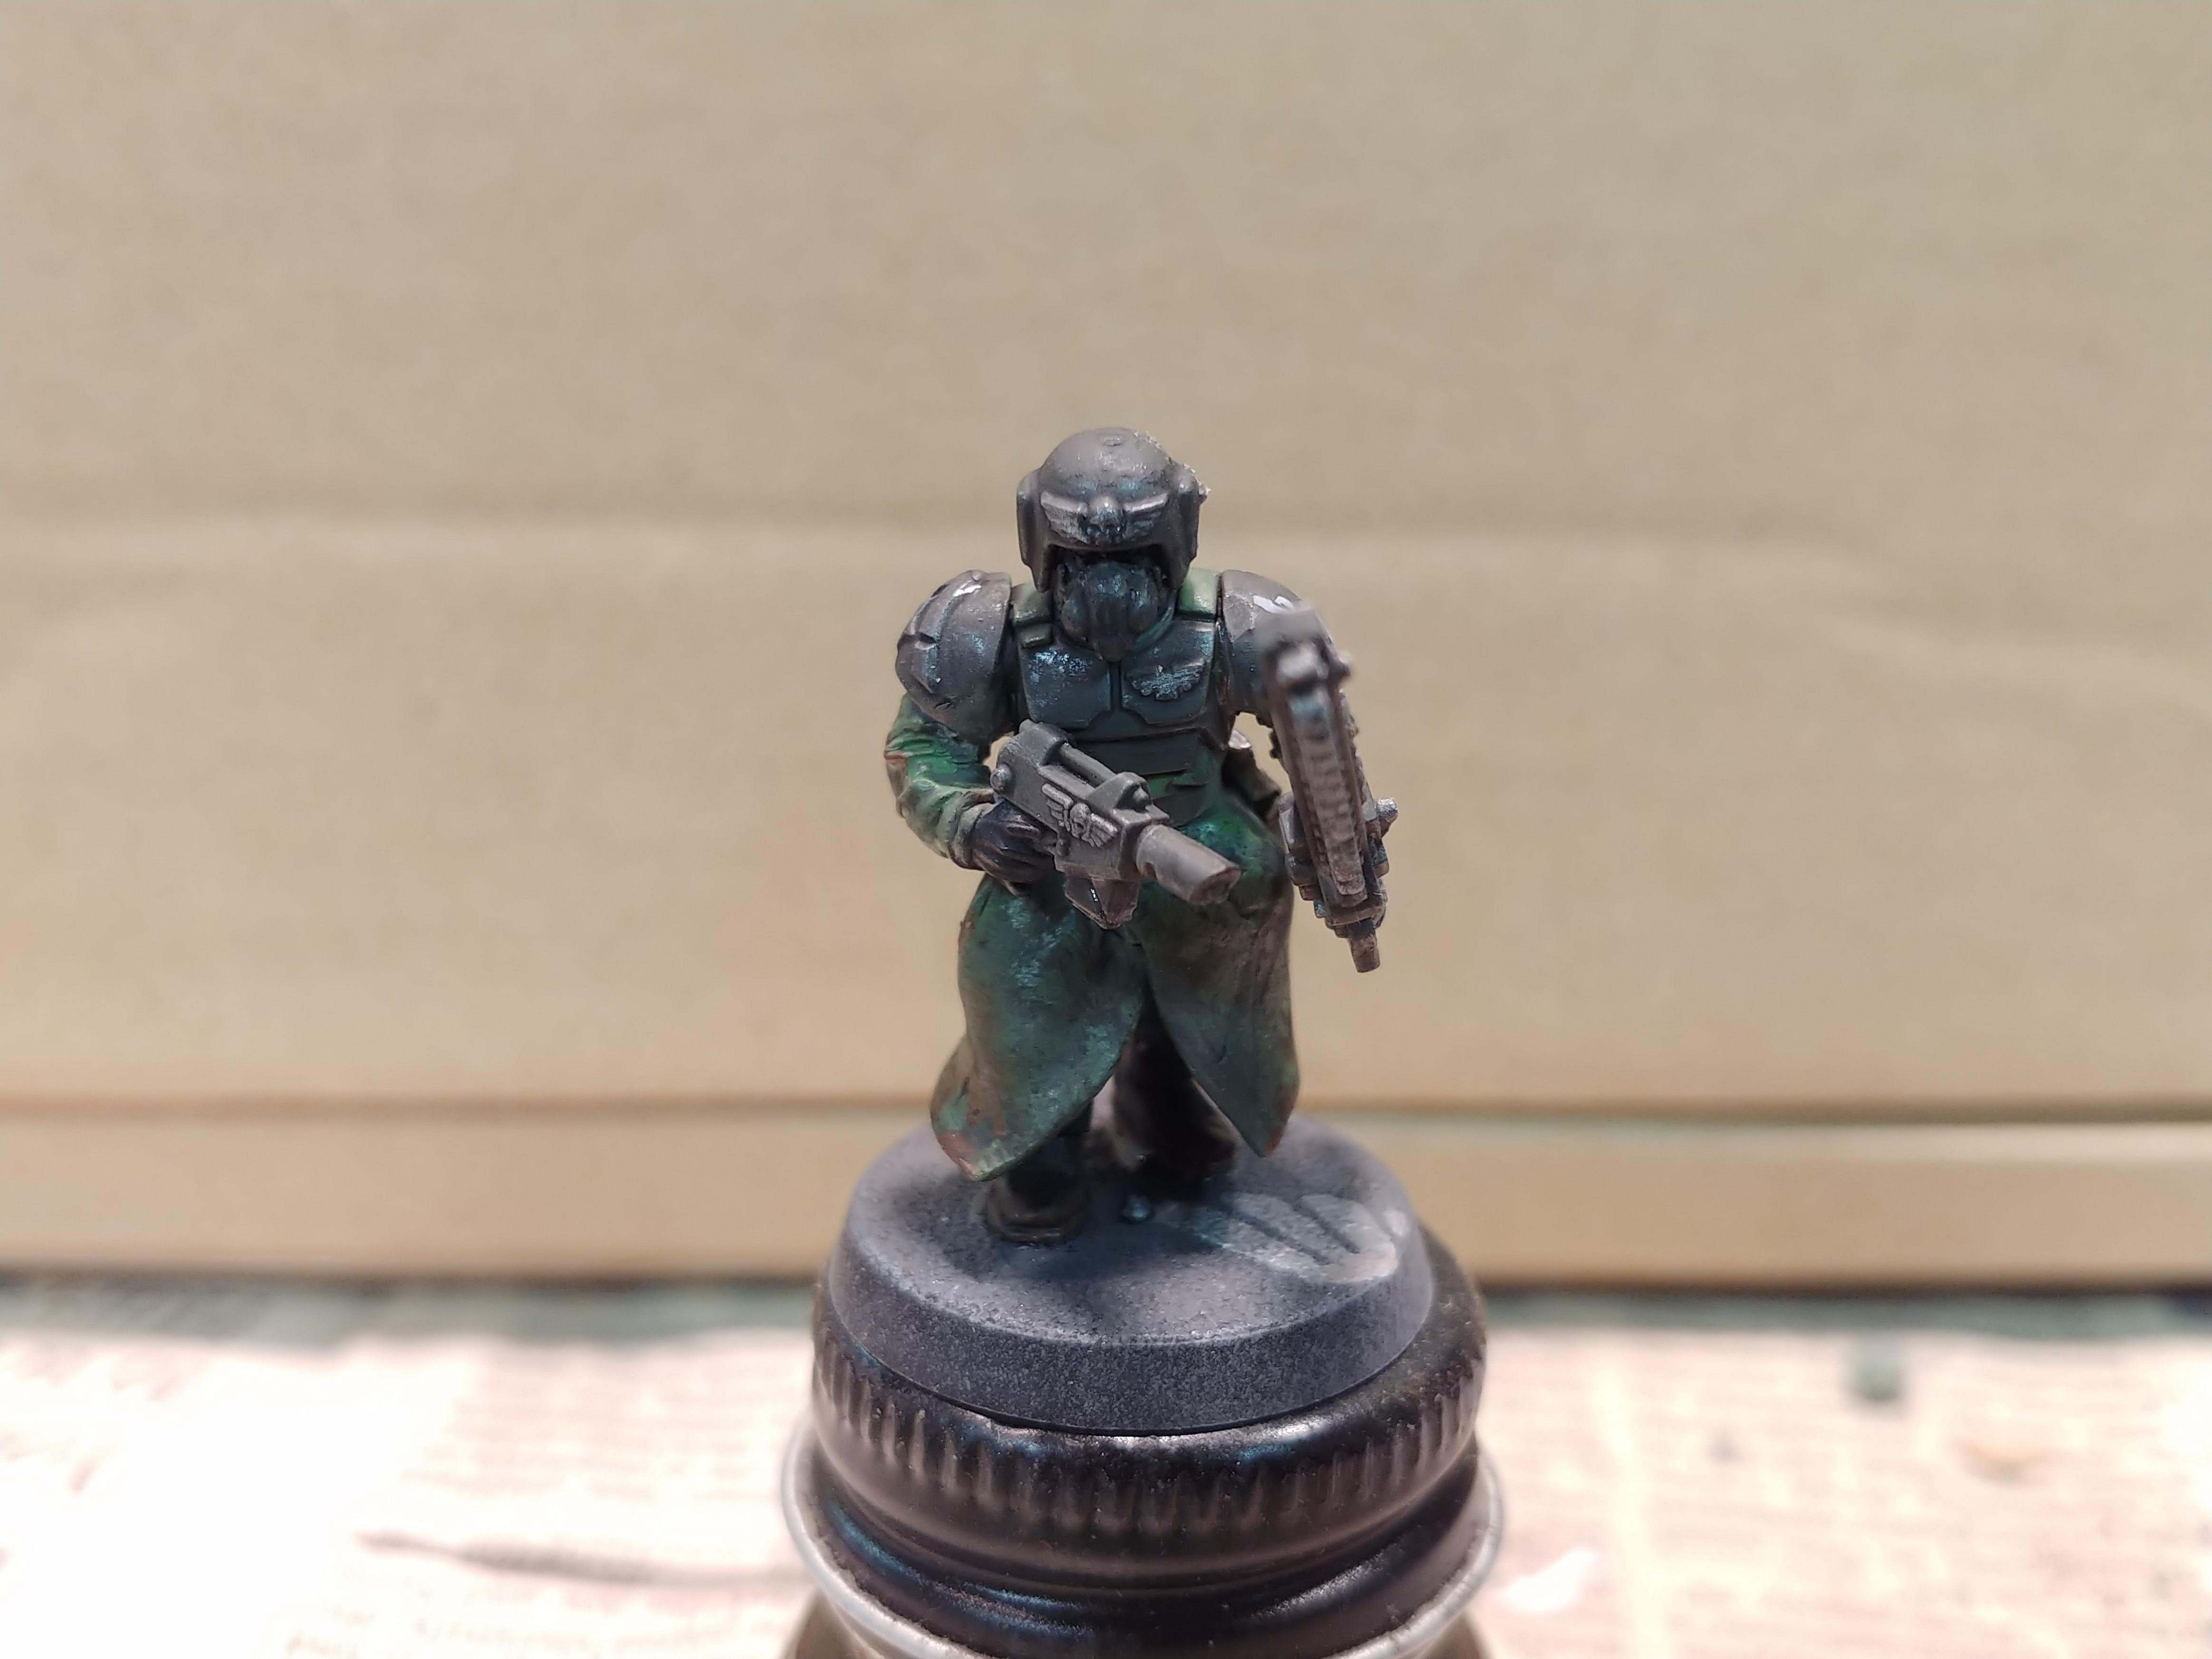 Am, Astra Militarum, Chainsword, Coat, Guardsmen, Imperial Guard, Infantry, Long, Longcoat, Respirator, Sergeant, Trench, Trenchcoat